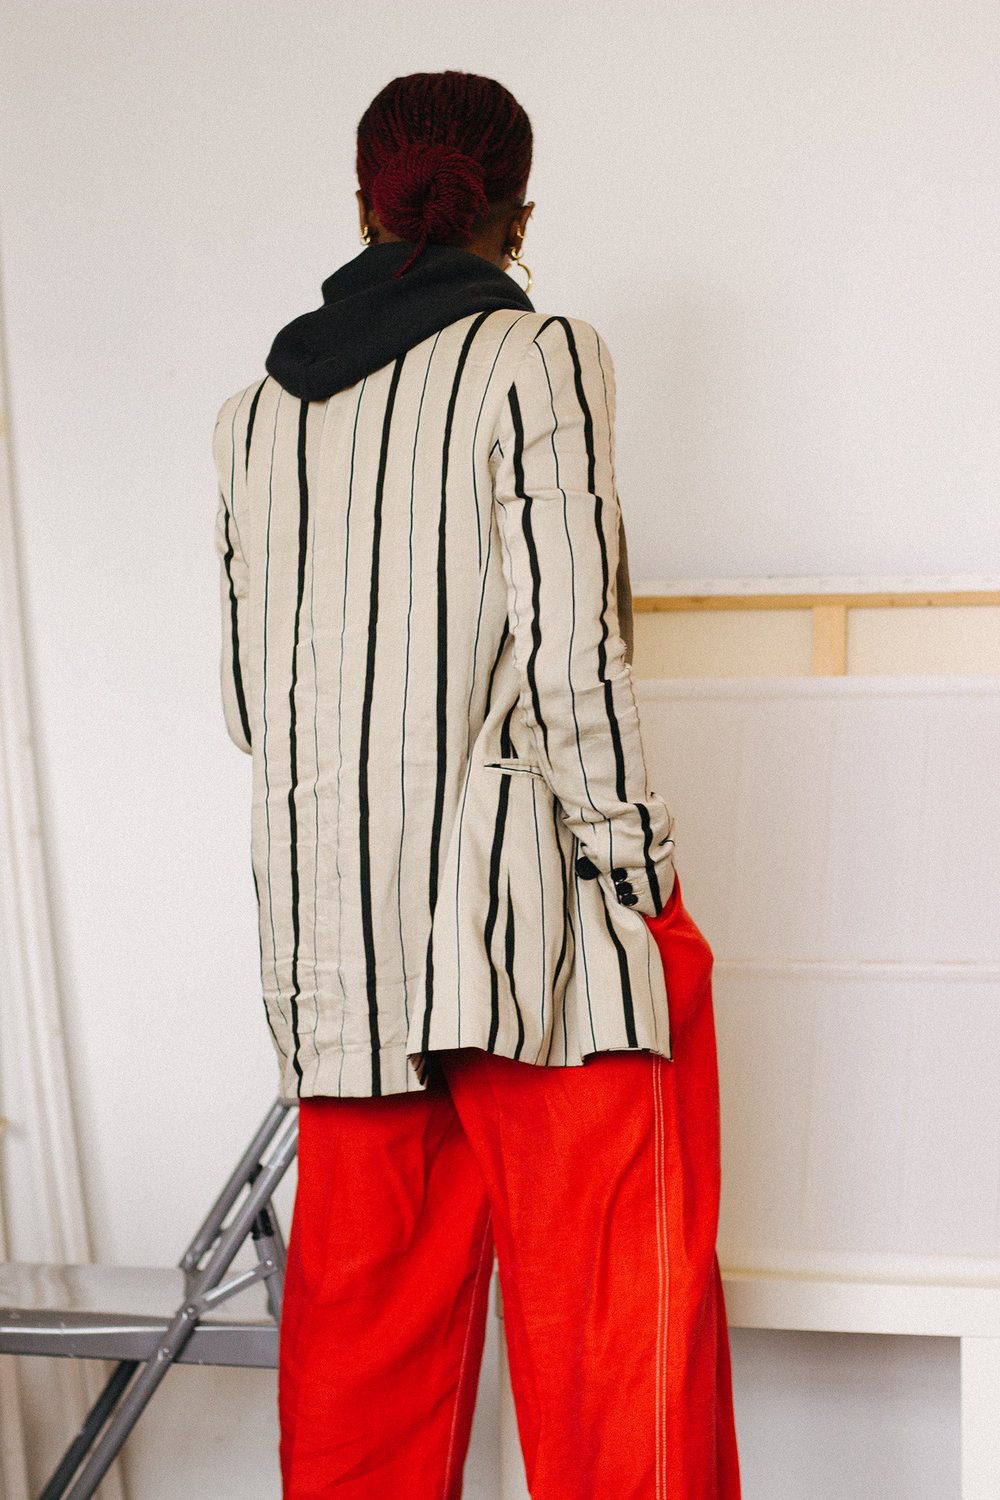 A fashionable woman wearing red trousers, a striped blazer, and a leather bag.